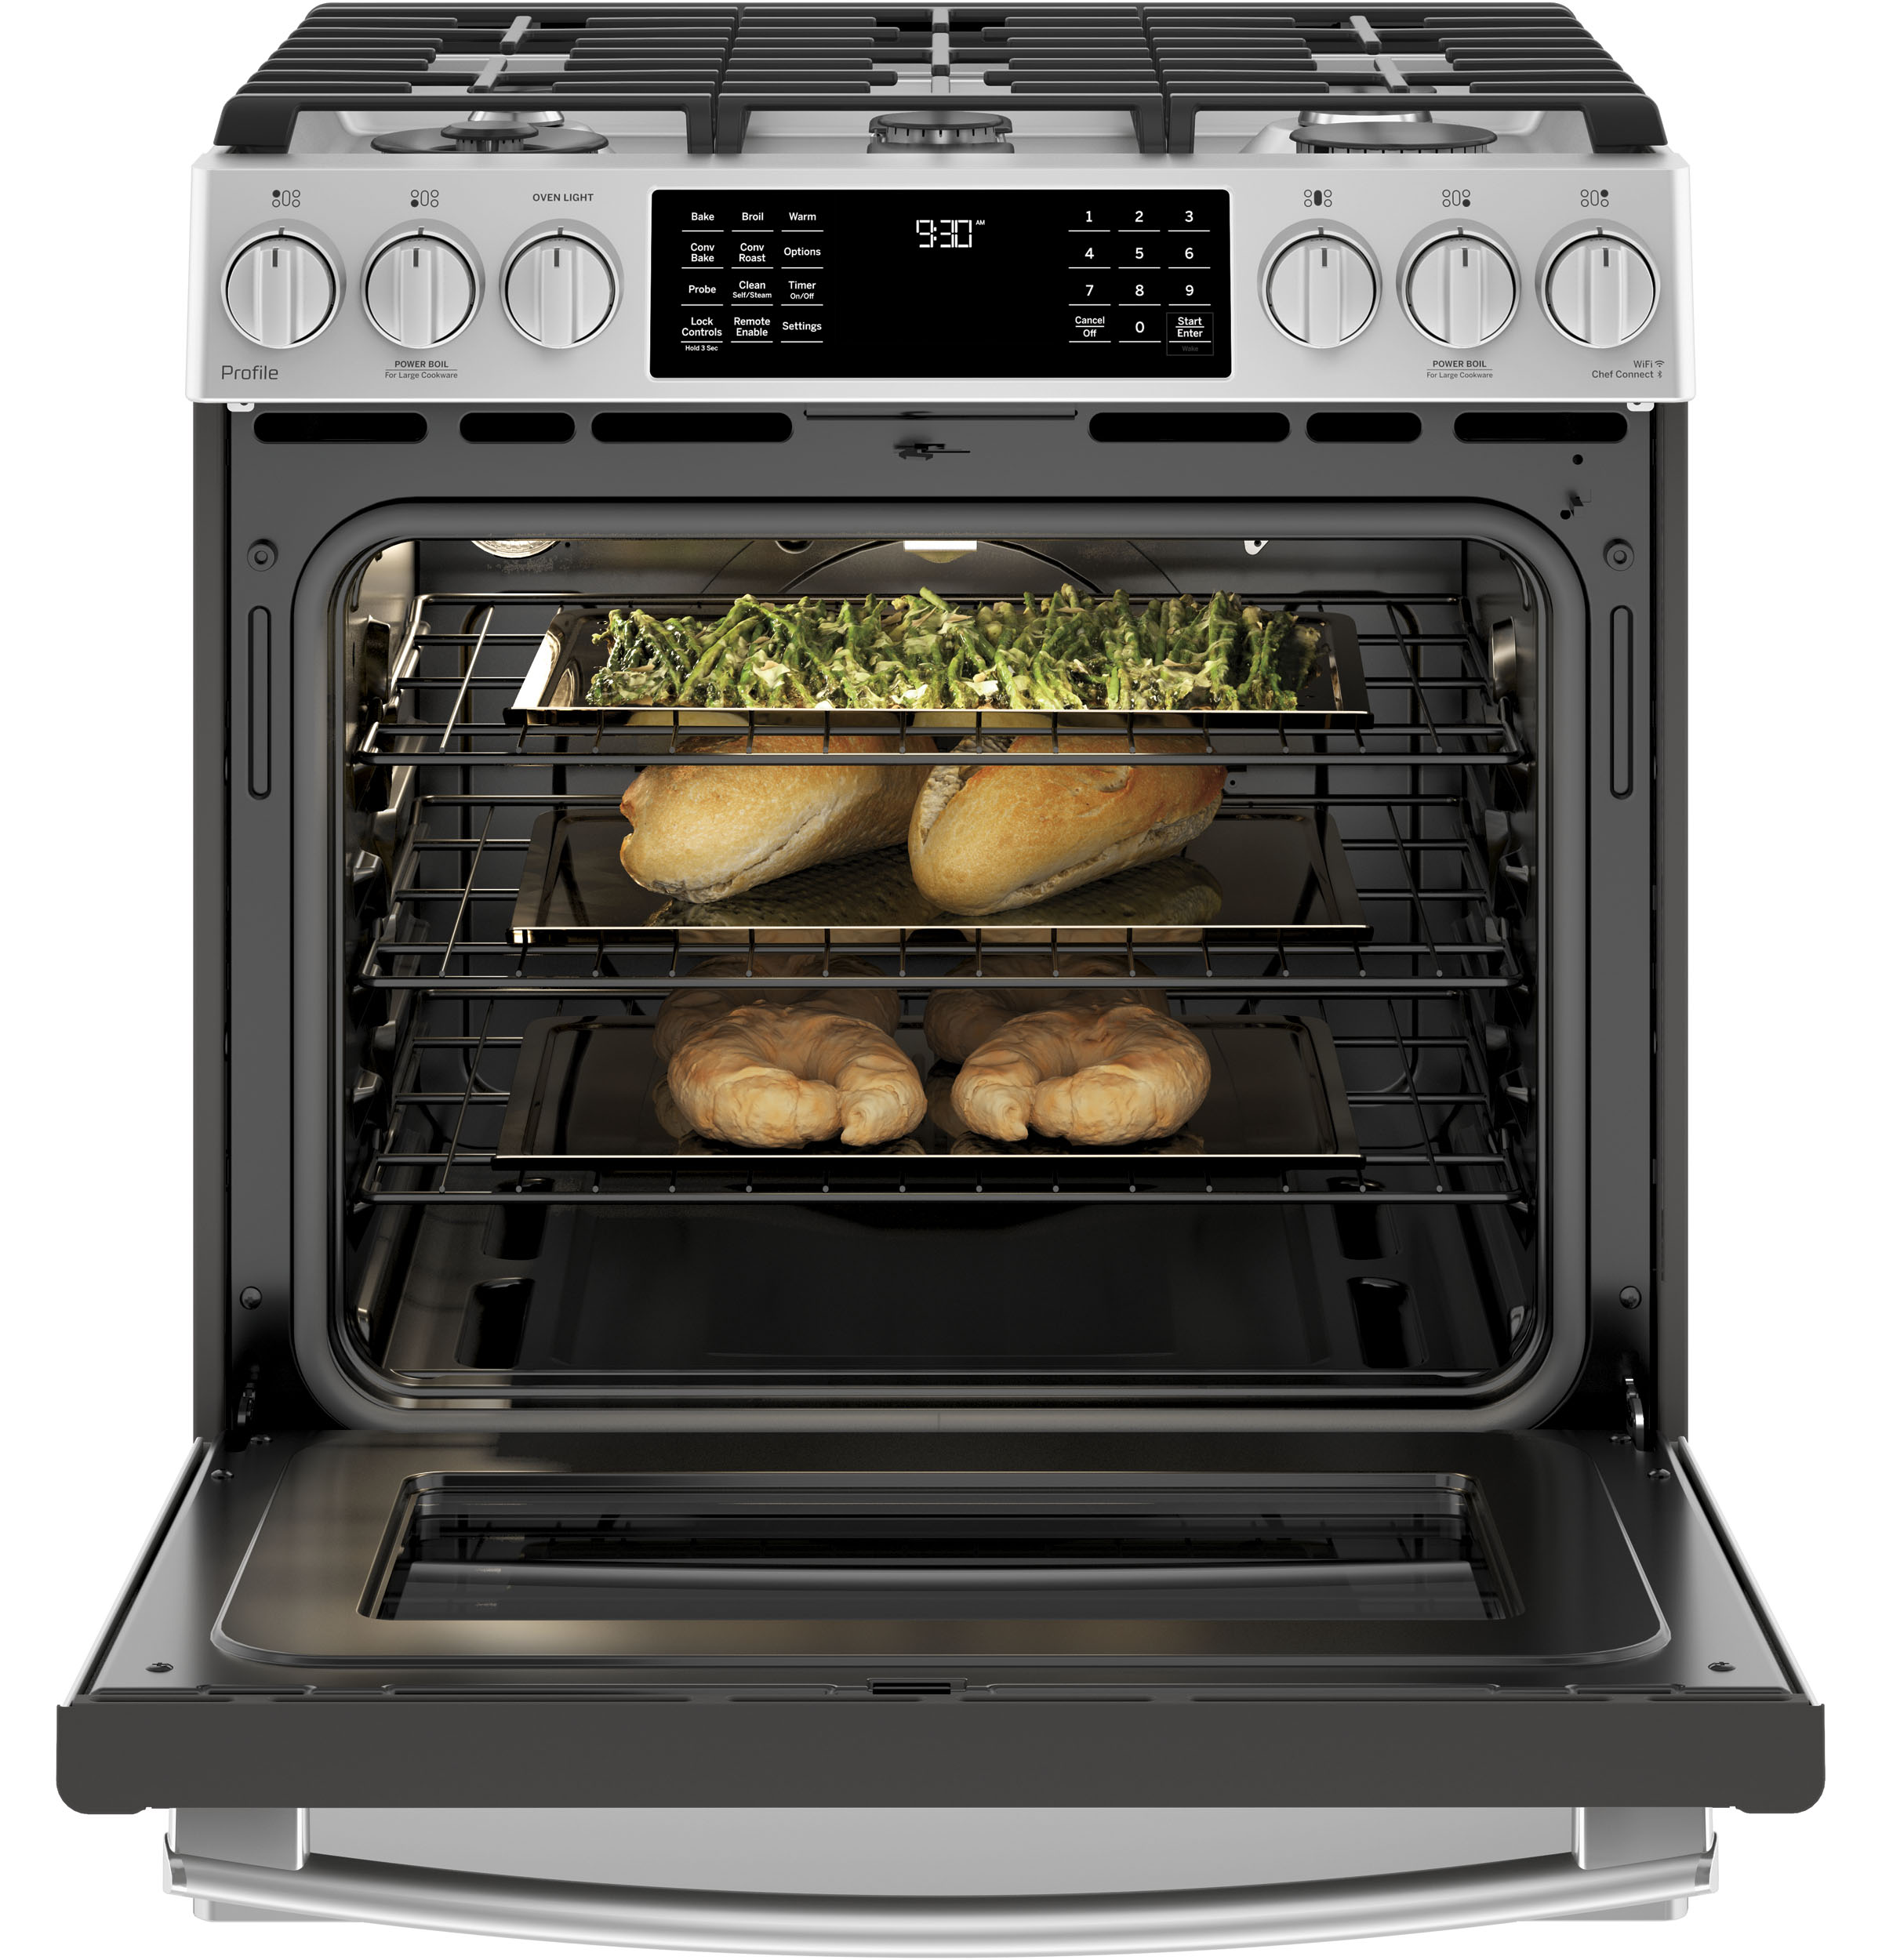 "Model: PGS930SELSS | GE Profile GE Profile™ Series 30"" Slide-In Front Control Gas Range"